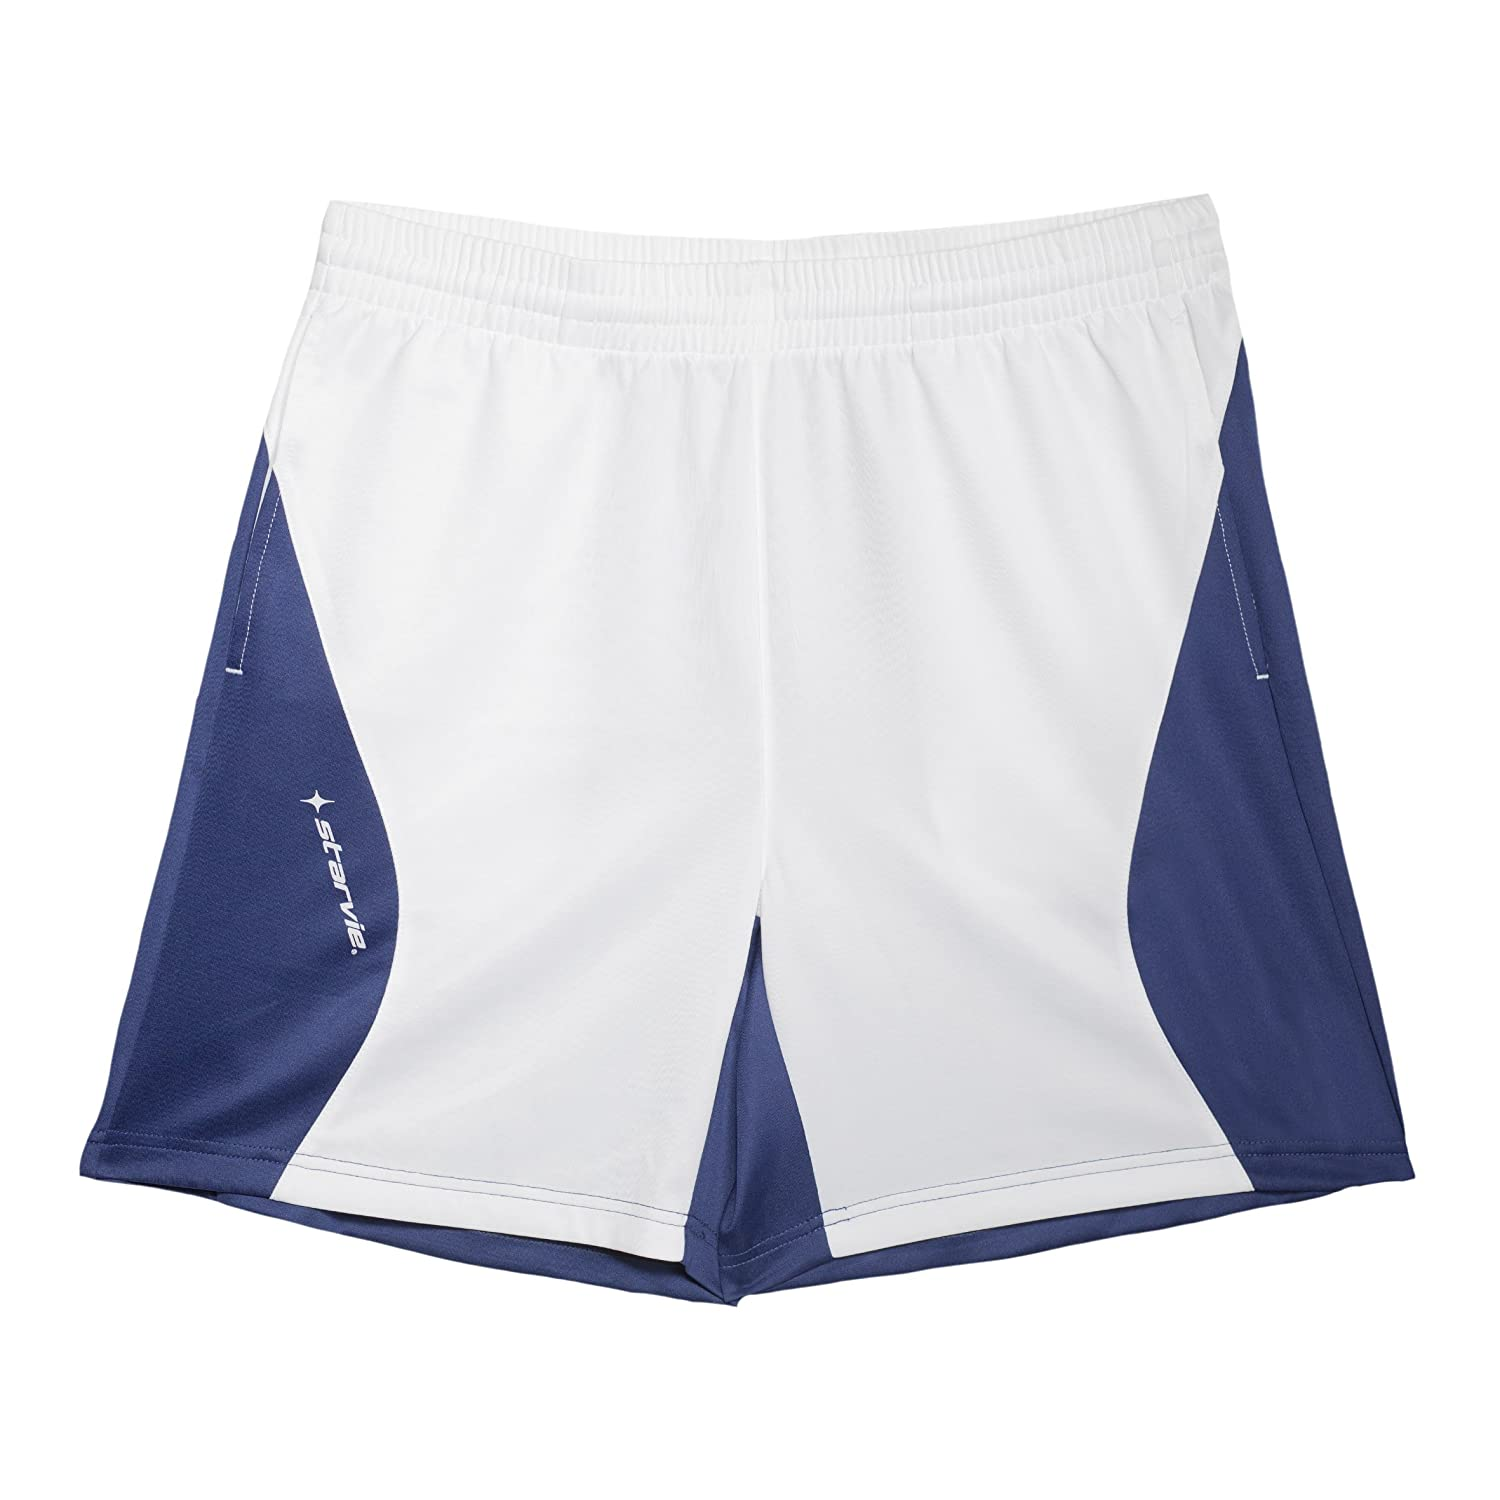 Short Padel White Star: Amazon.es: Deportes y aire libre